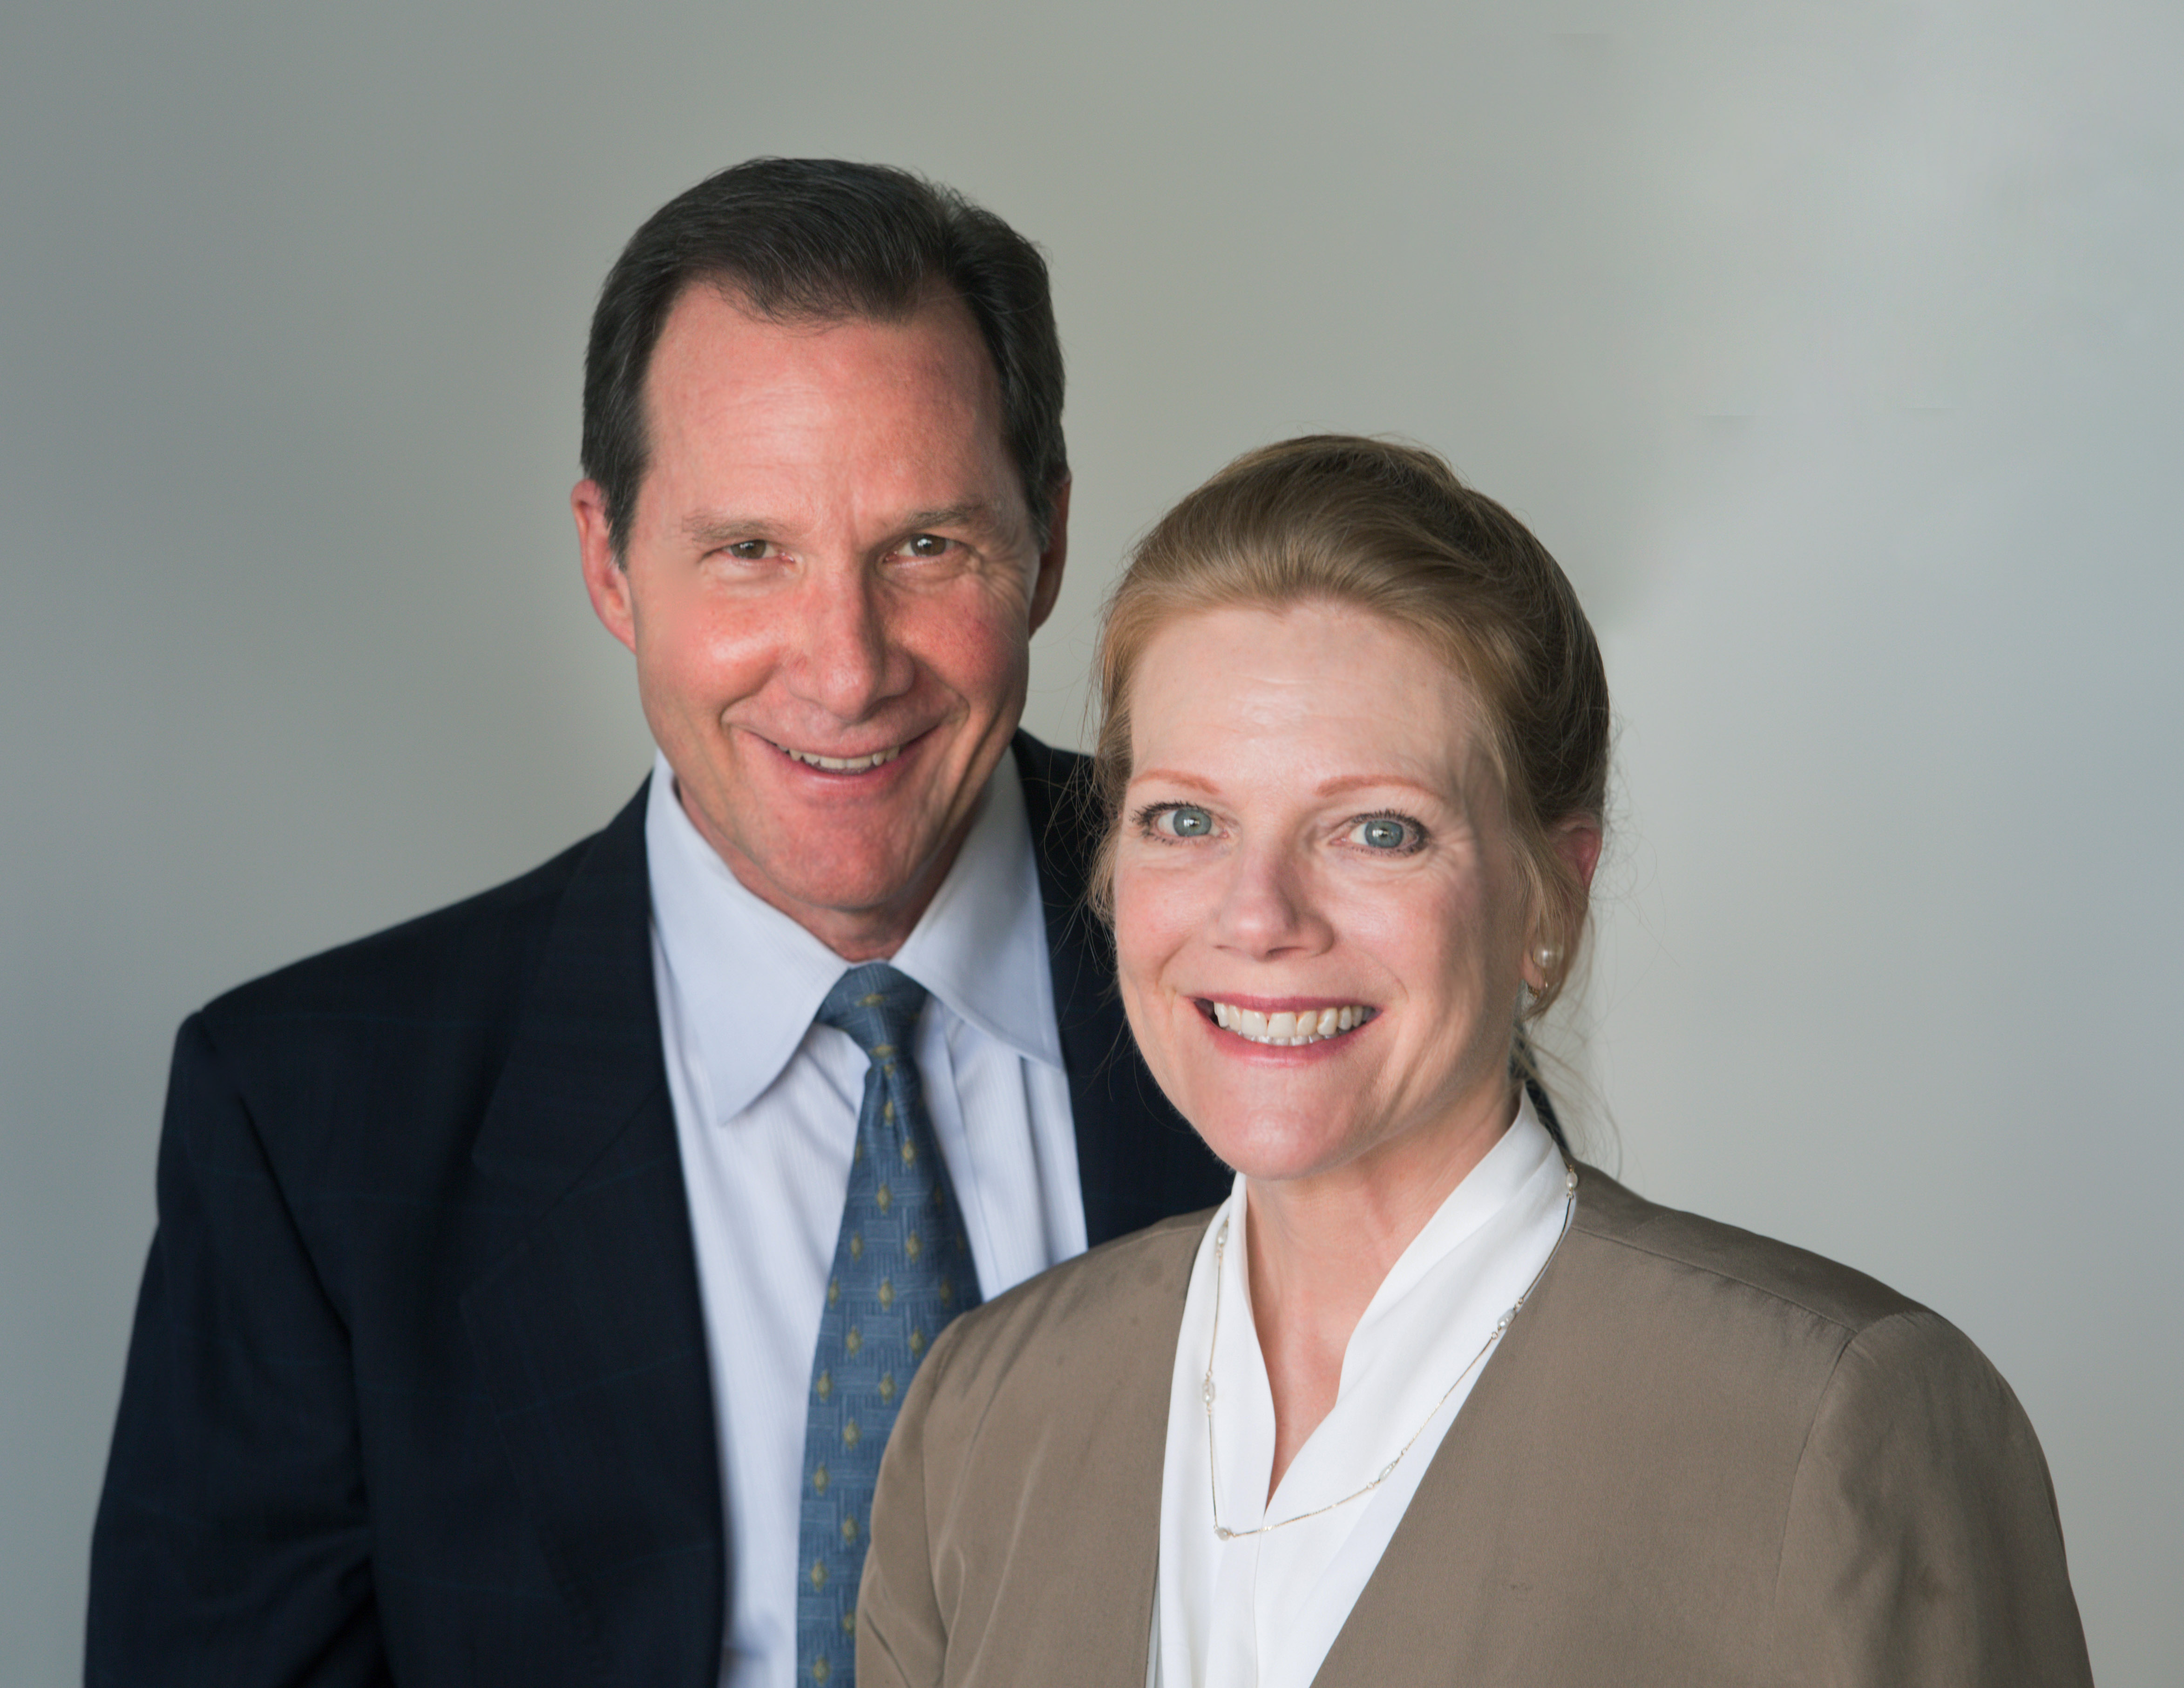 drs-chris-and-janie-turner-nutritionist-in-Long-Beach-Ca